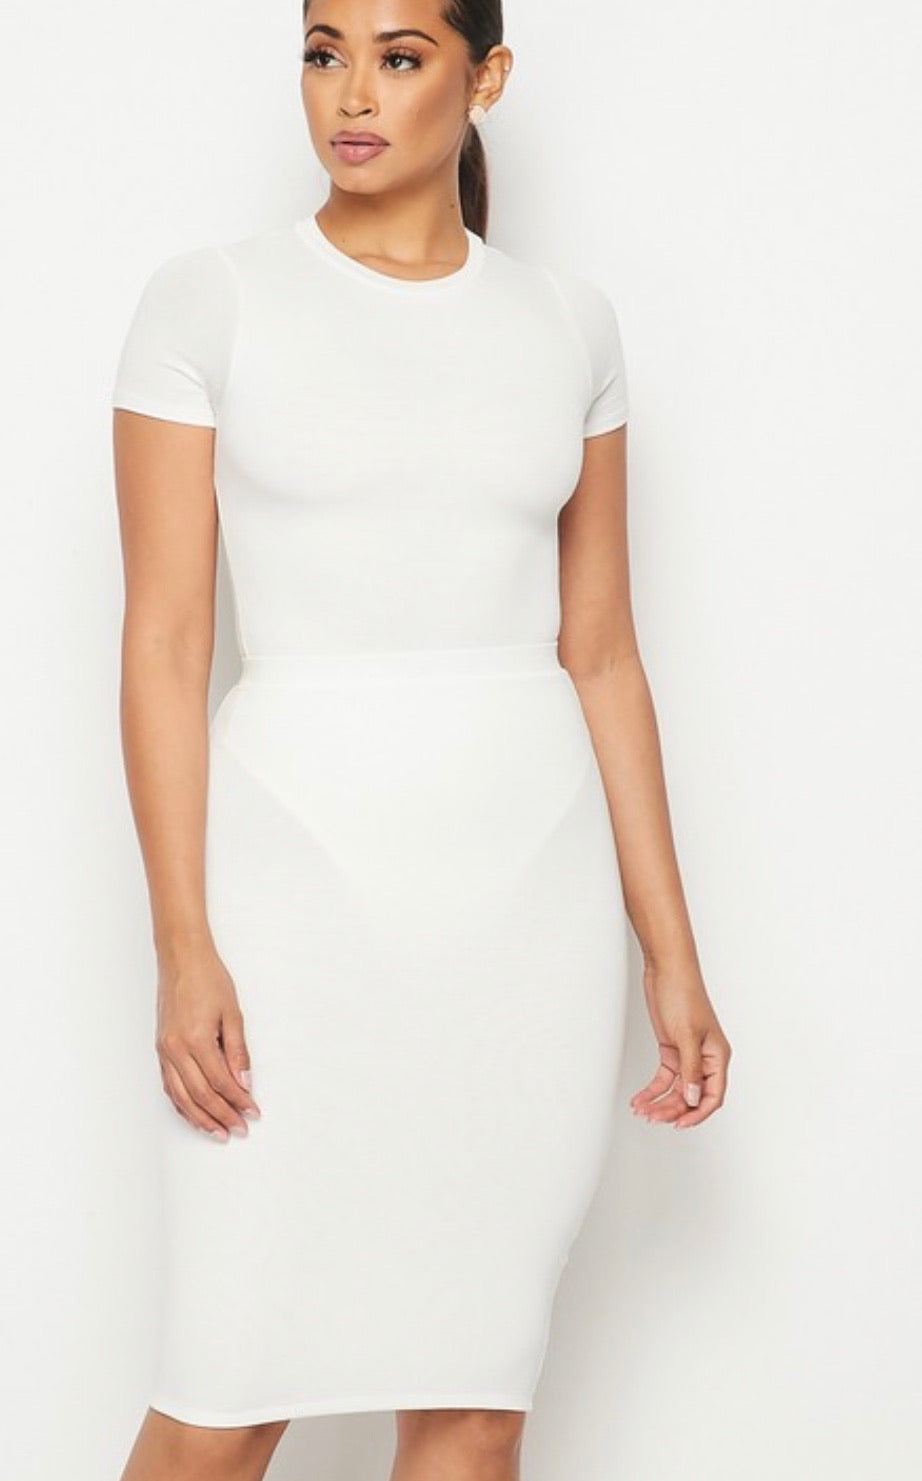 Essential T-Shirt and Pencil Skirt Set